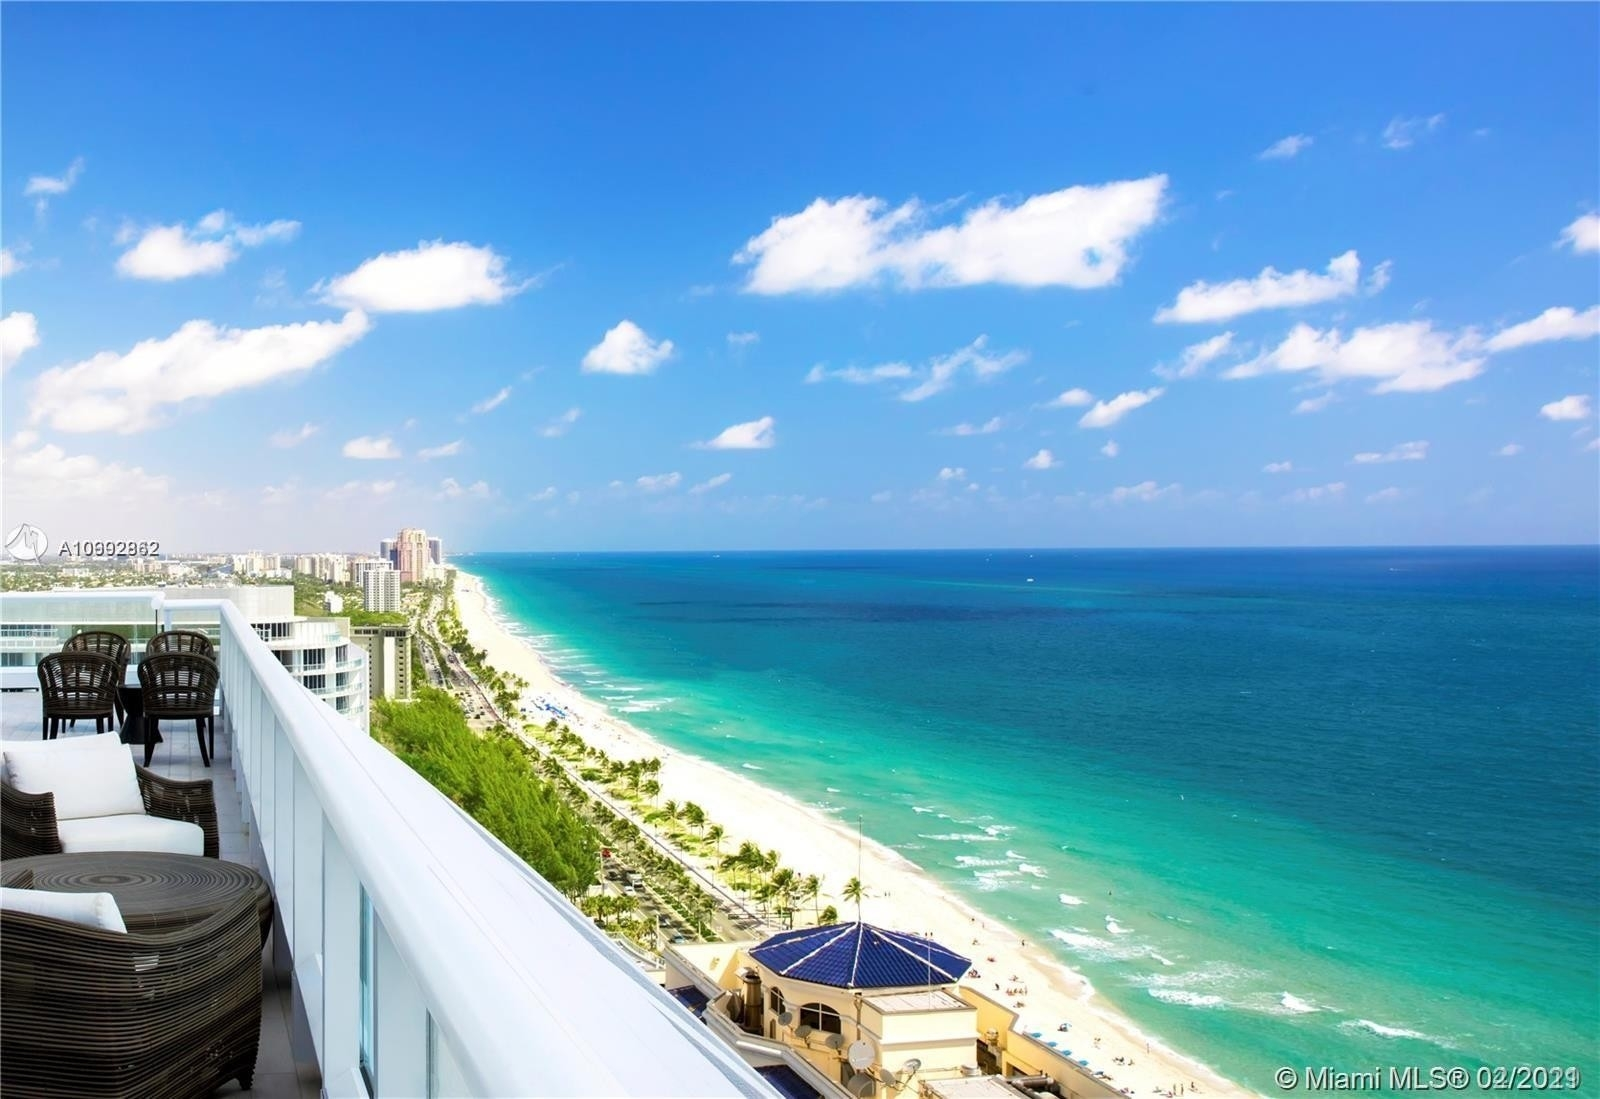 Property en 551 N Fort Lauderdale Beach Blvd , H812 Central Beach, Fort Lauderdale, FL 33304